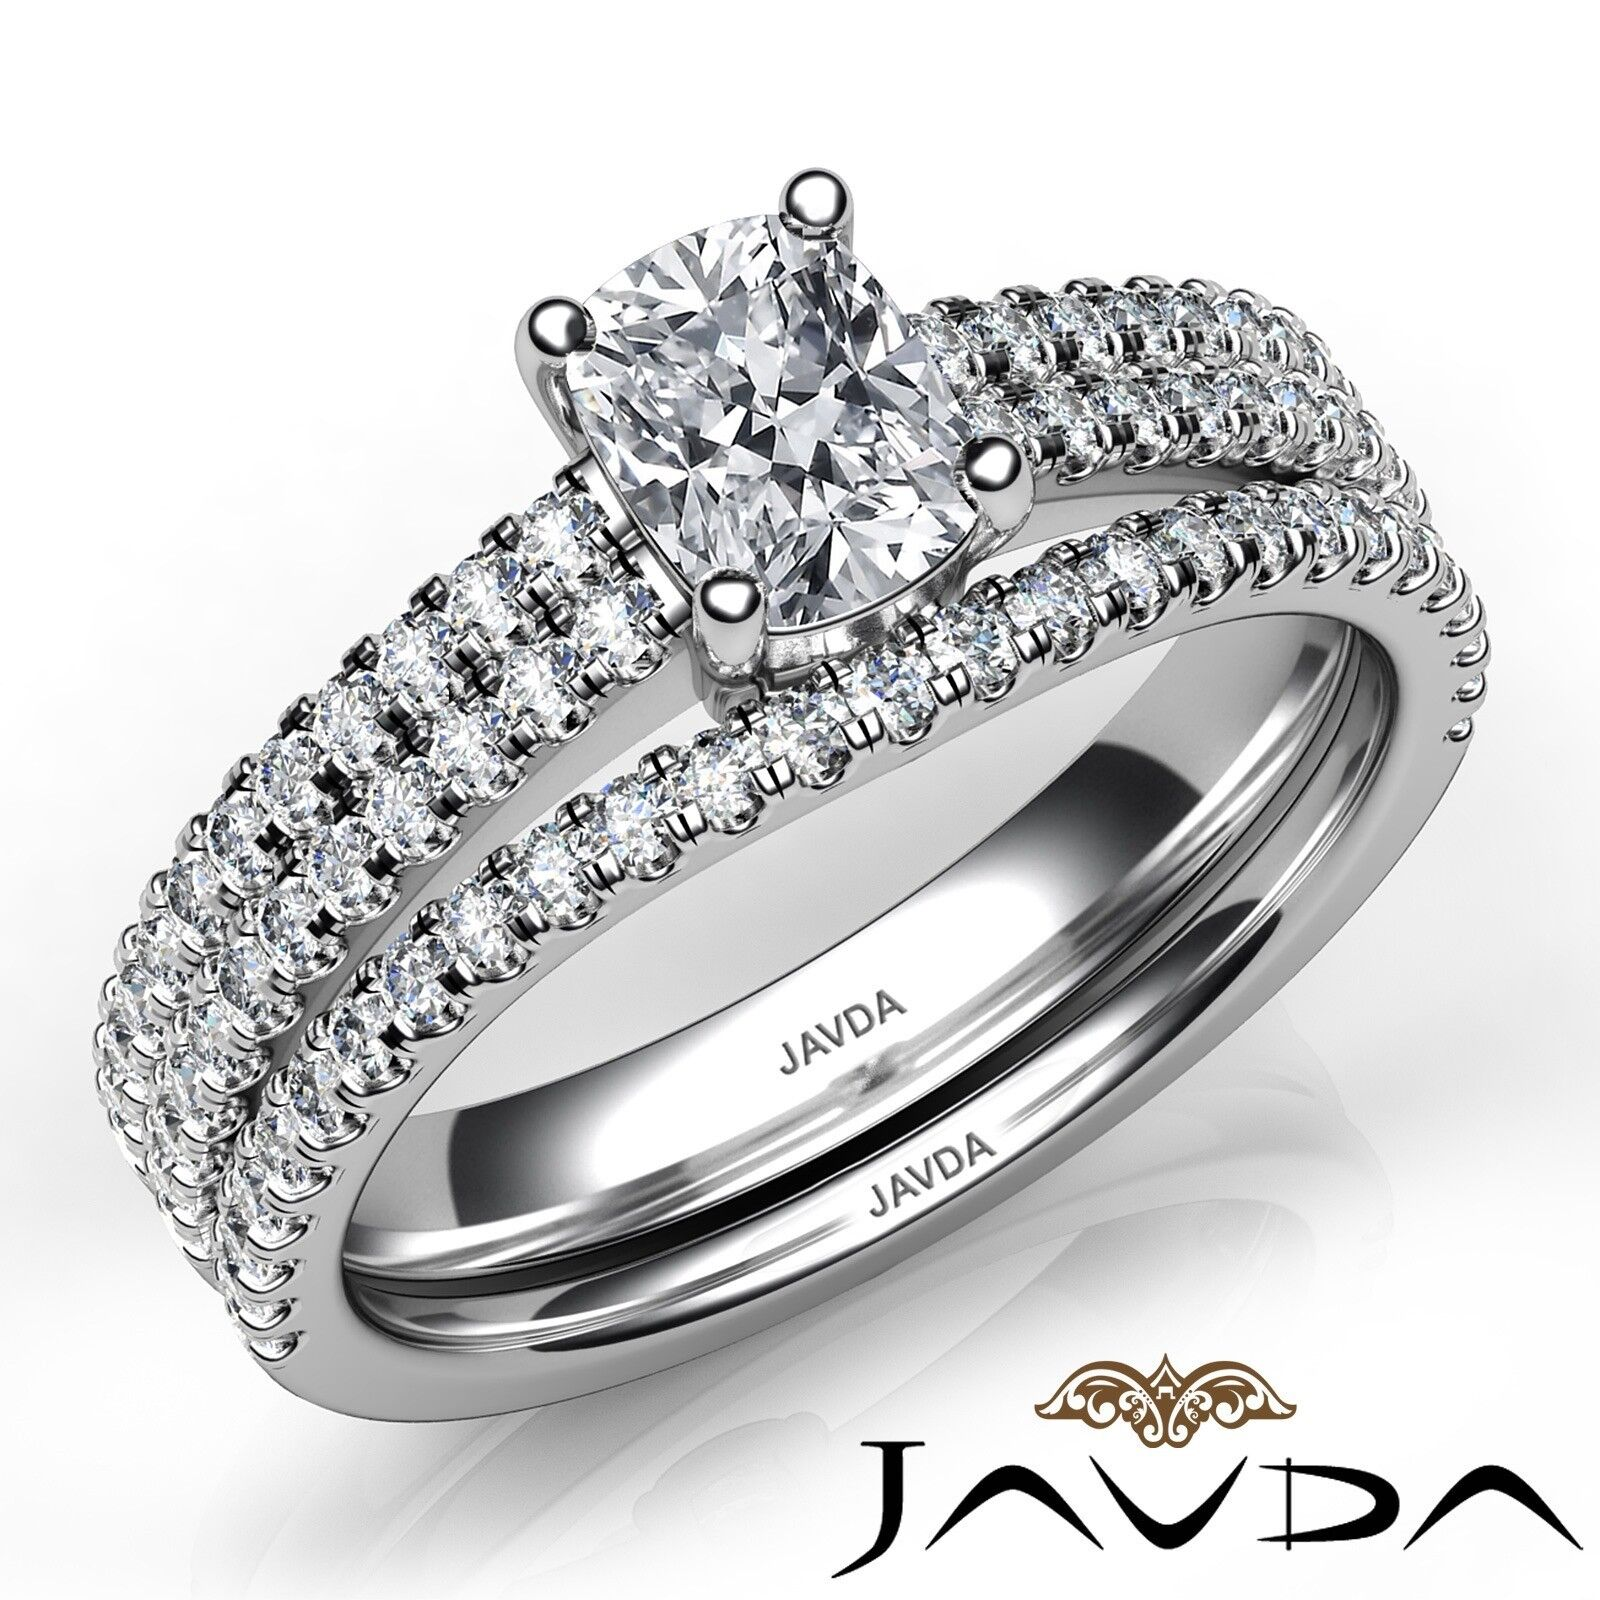 1.54ctw Bridal Scalloped Pave Cushion Diamond Engagement Ring GIA G-SI1 W Gold 1